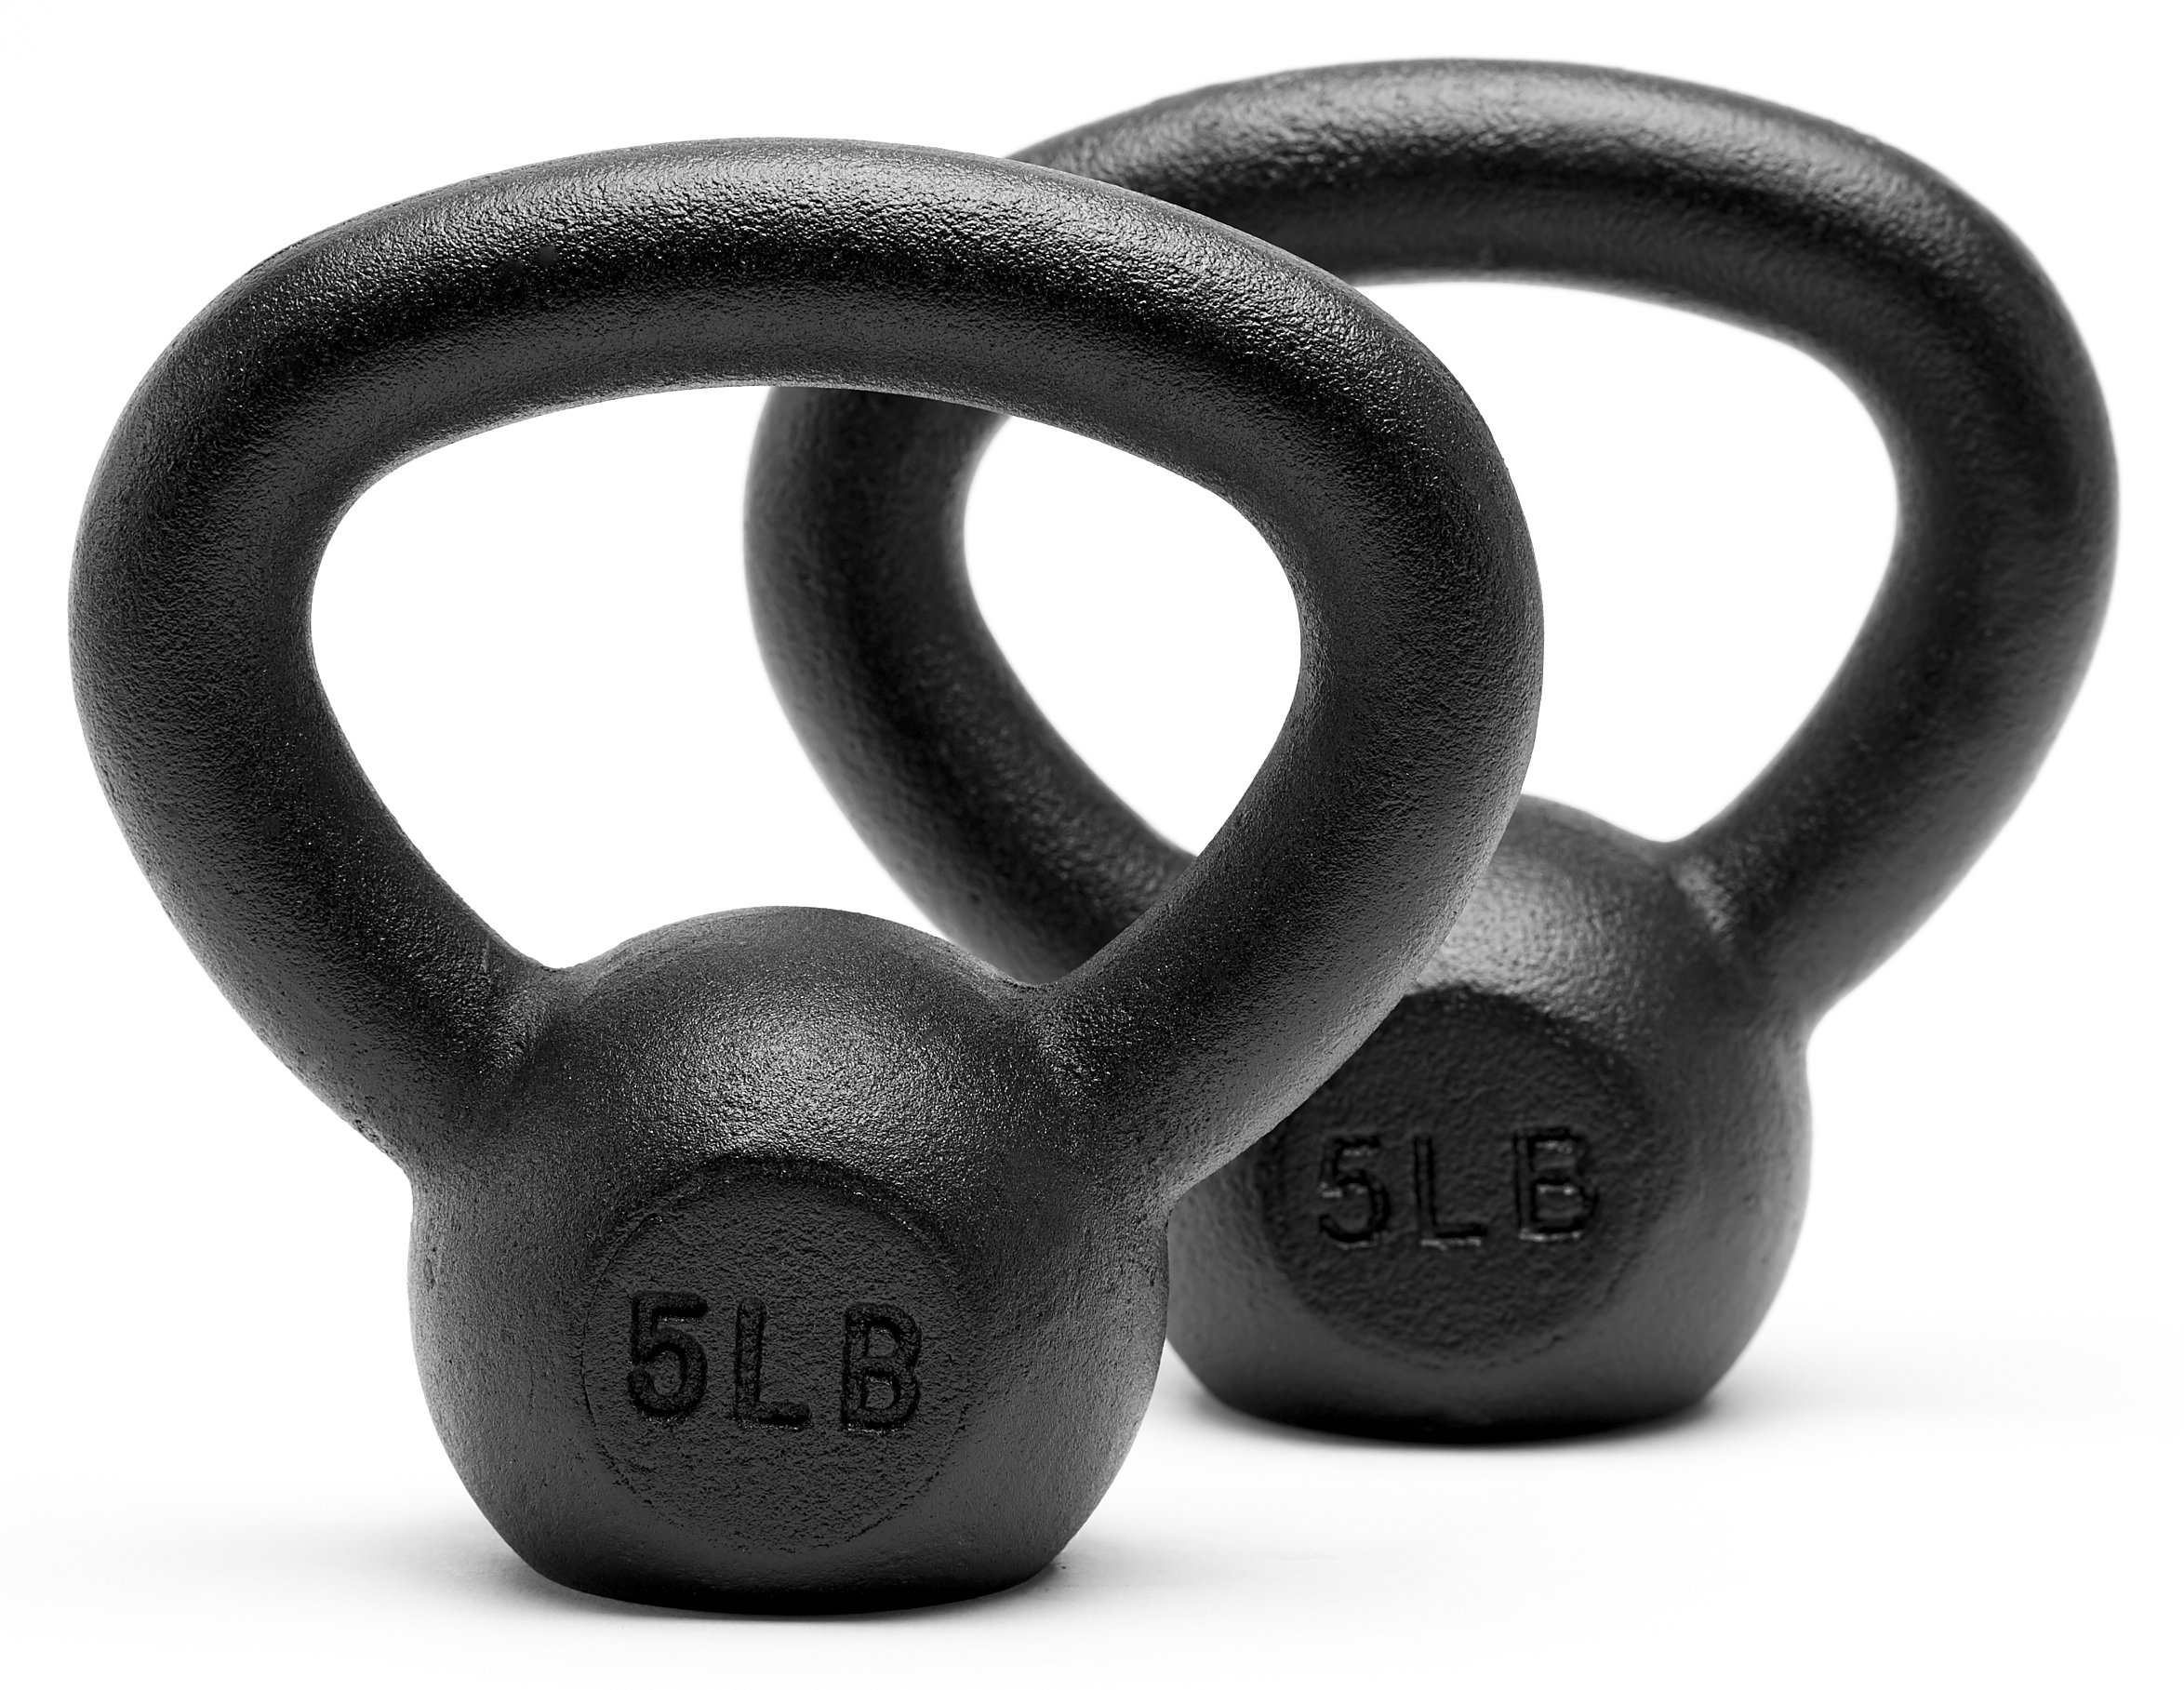 Unipack Powder Coated Solid Cast Iron Kettlebell Weights Set- (5+5 lbs)